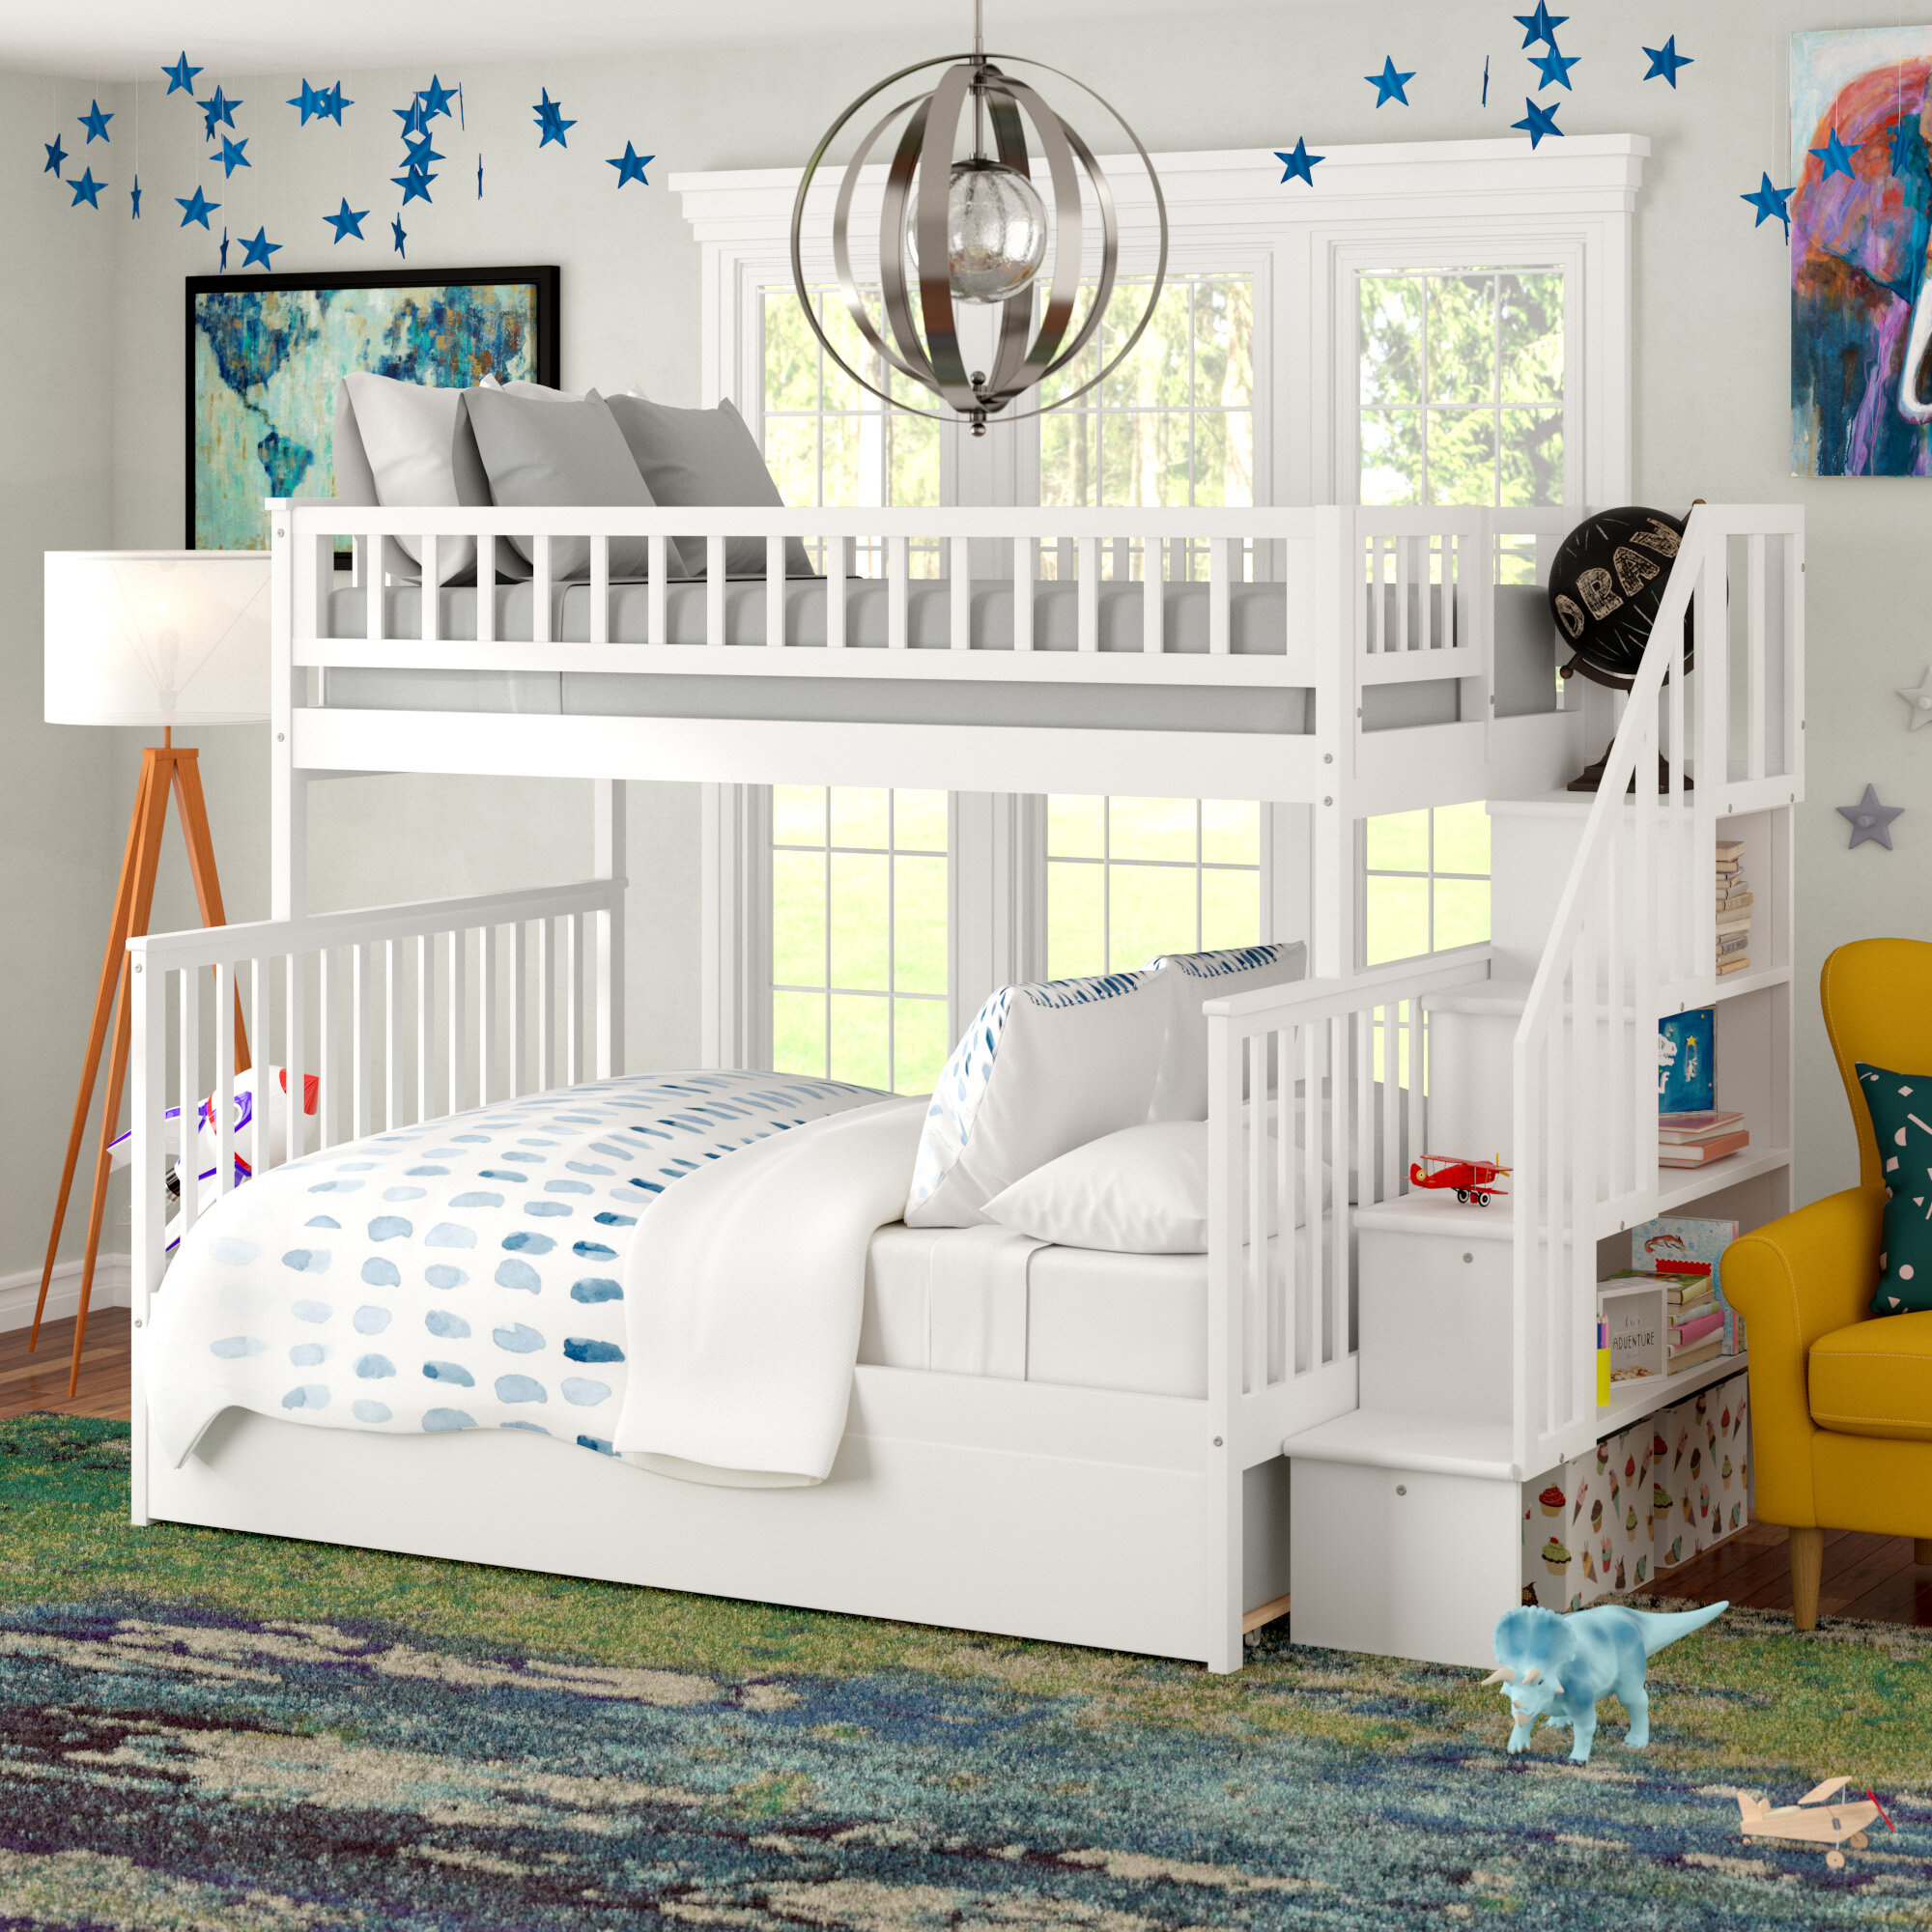 Double Deck Bed With Stairs Cheaper Than Retail Price Buy Clothing Accessories And Lifestyle Products For Women Men